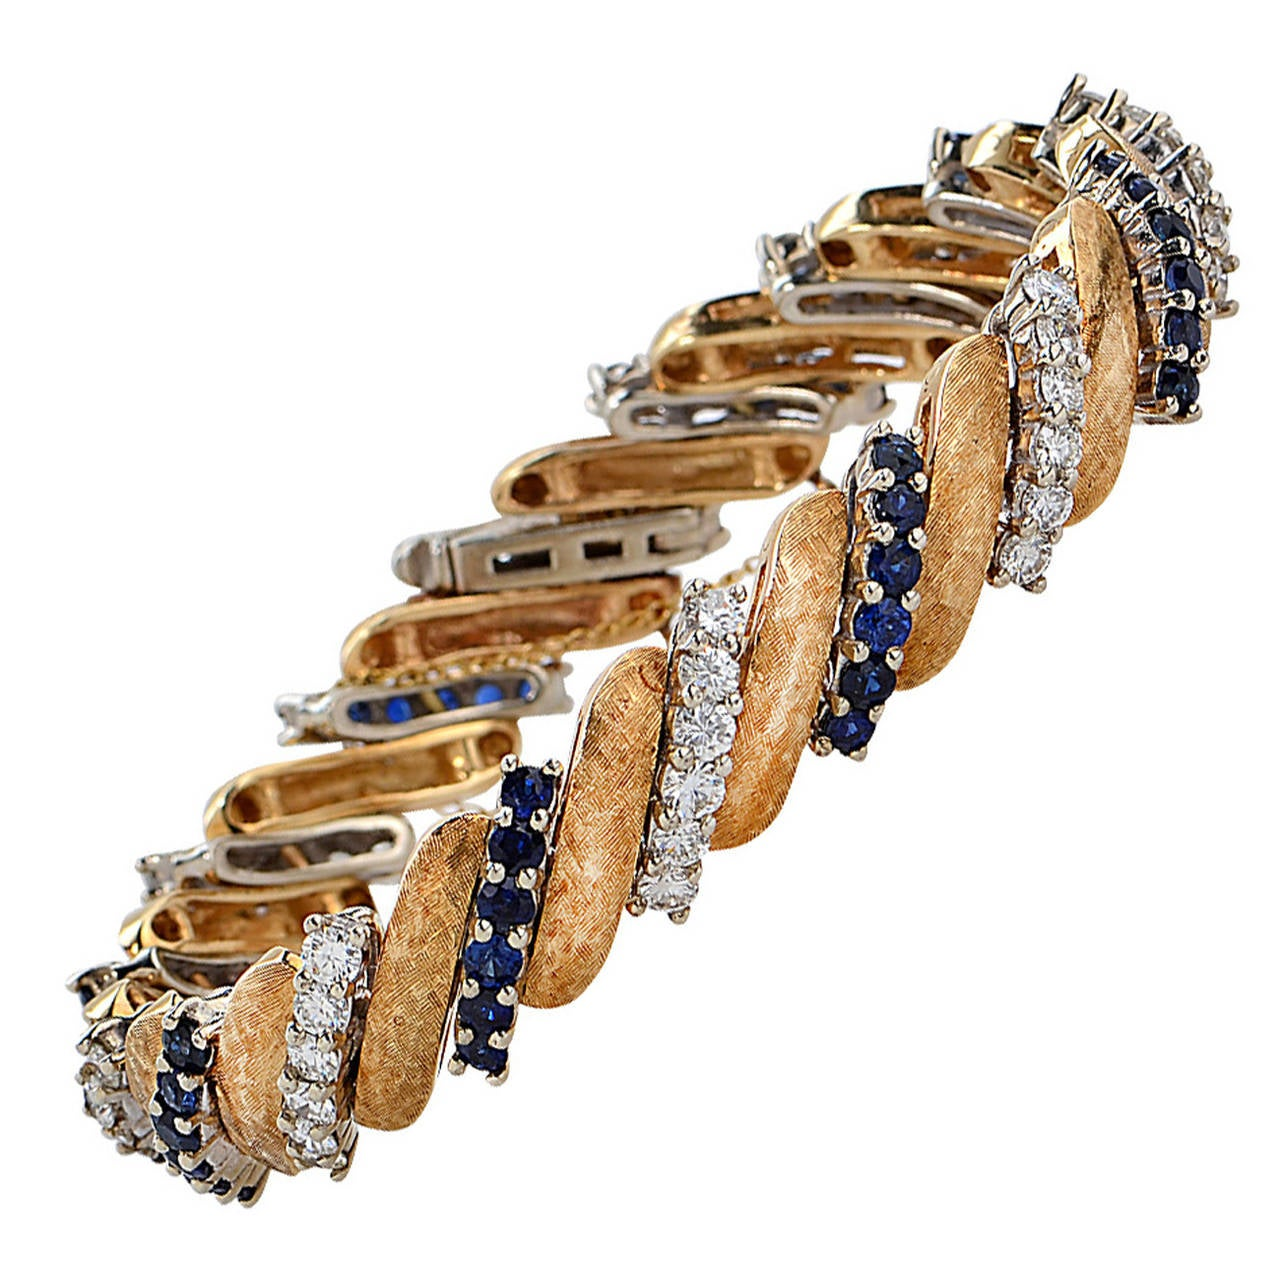 Elegant 18k Yellow Gold Sapphire and Diamond Bracelet